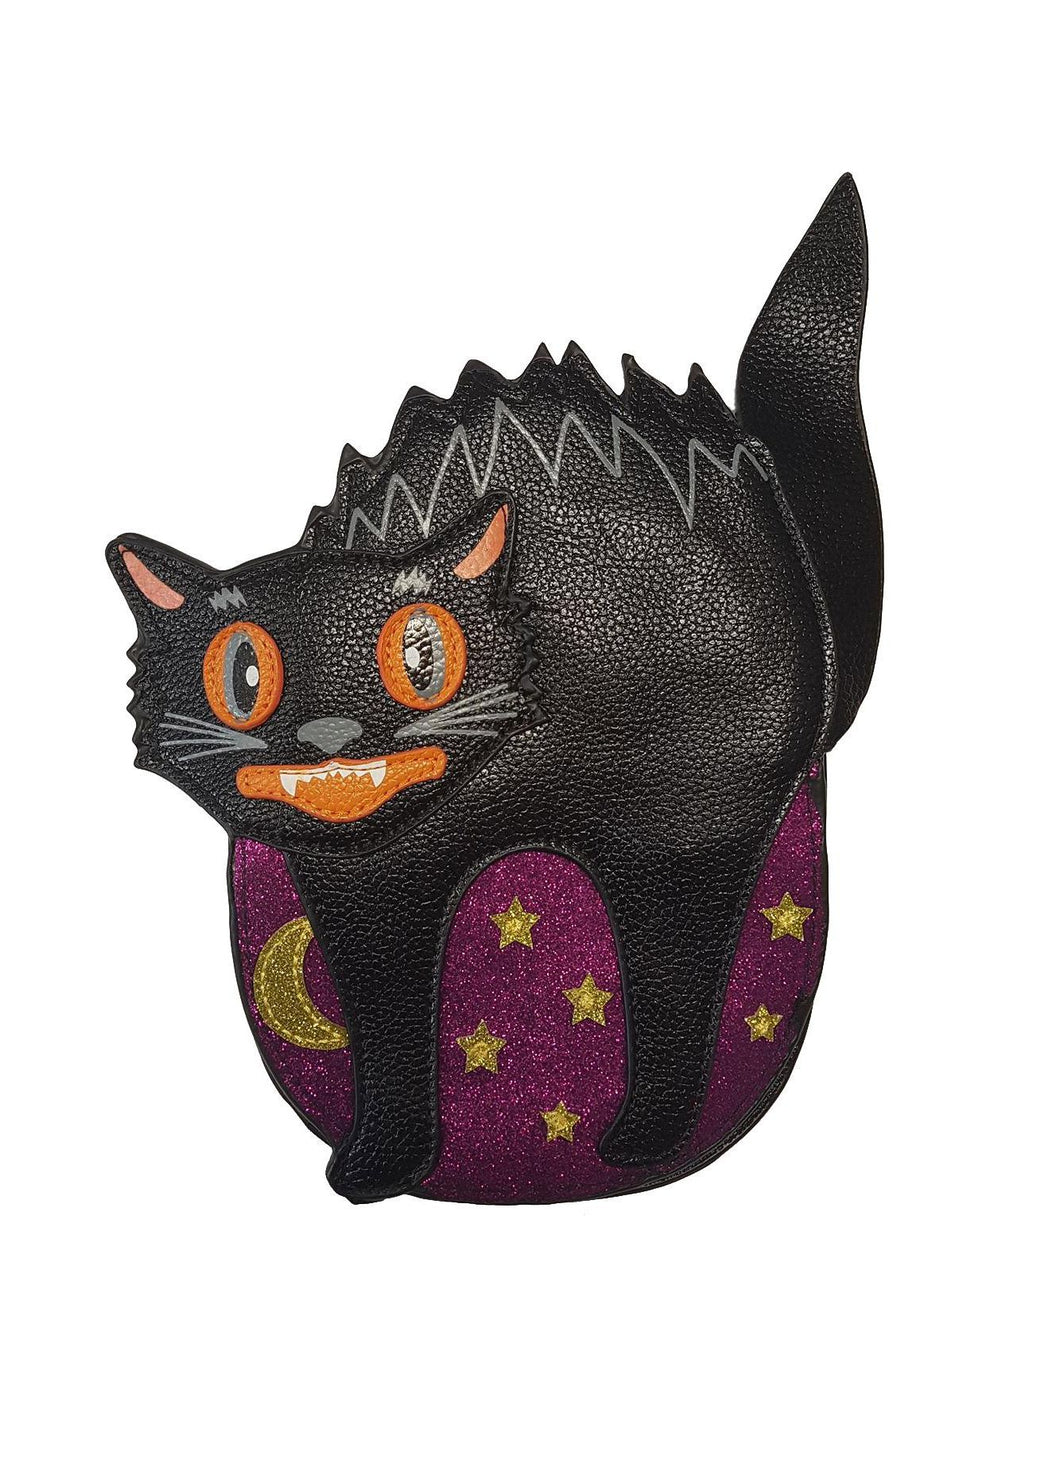 Sleepyville Critters Scared Cat Bag